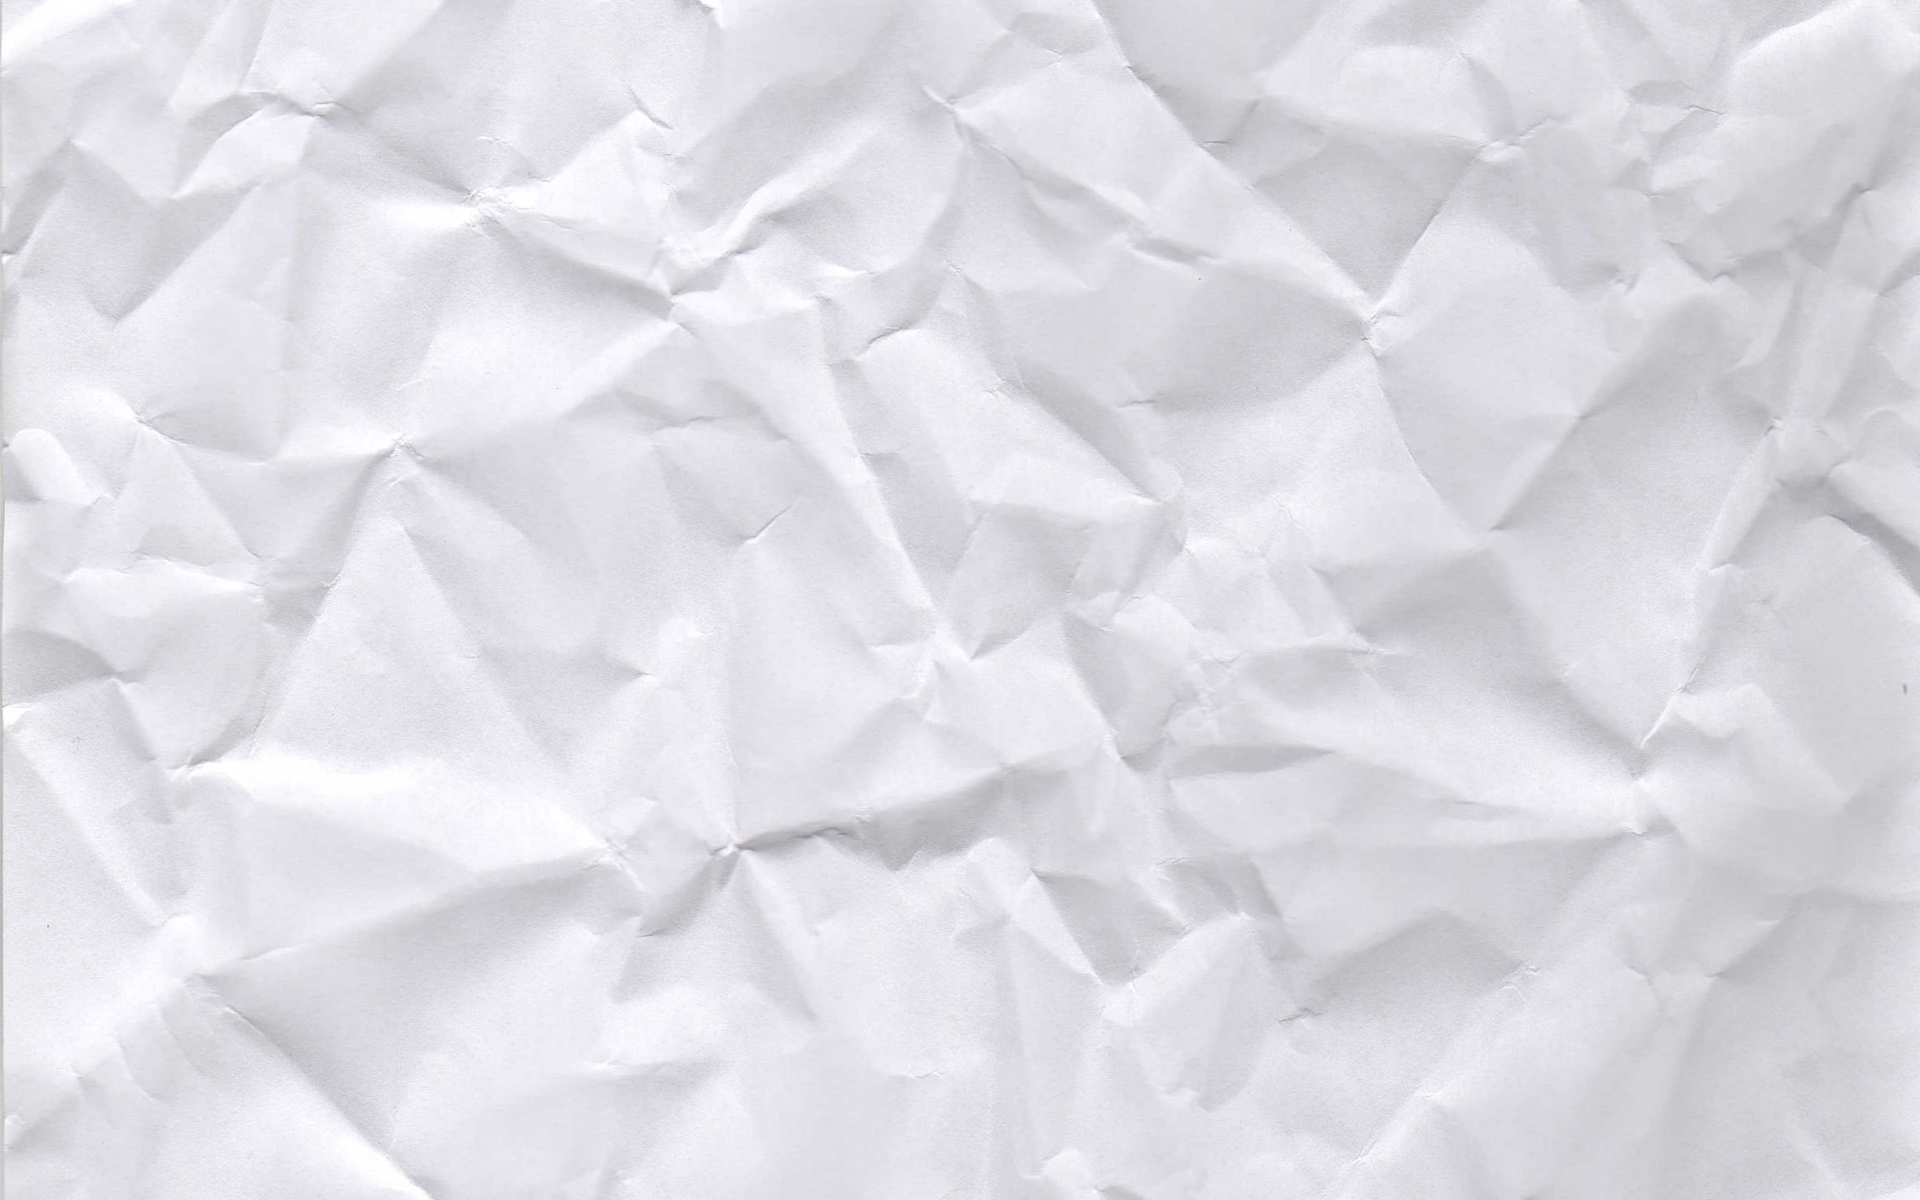 crumpled paper background Picture of crumpled paper background stock photo, images and stock photography image 10521765.